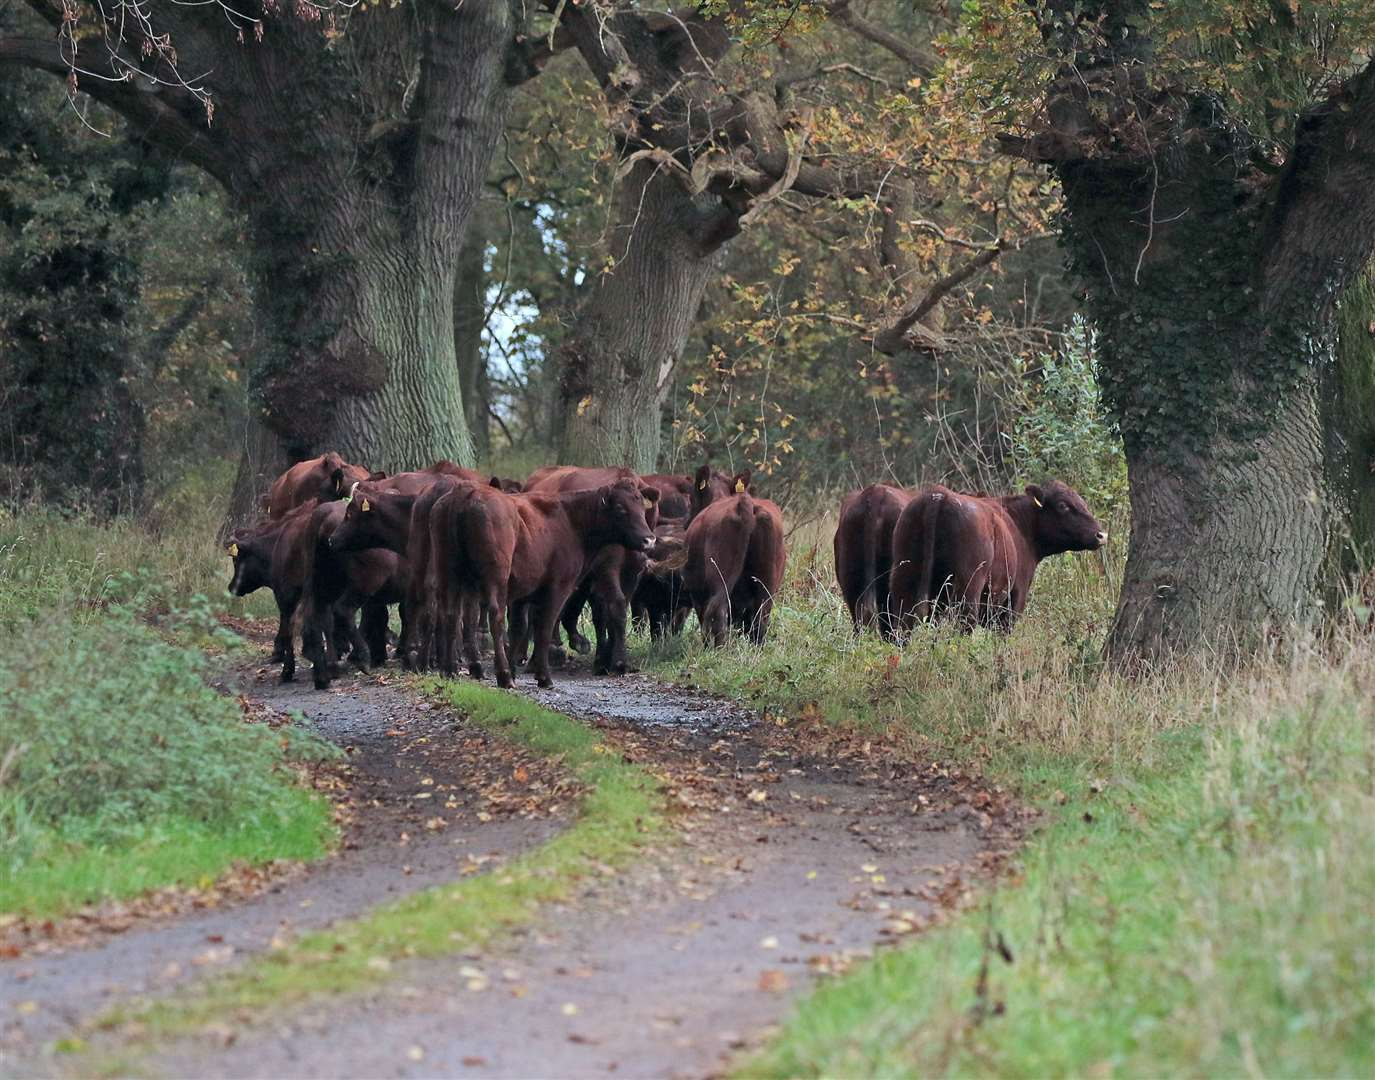 Officials hope the rare breed cattle will replicate how animals moved across the land thousands of years ago (43101584)